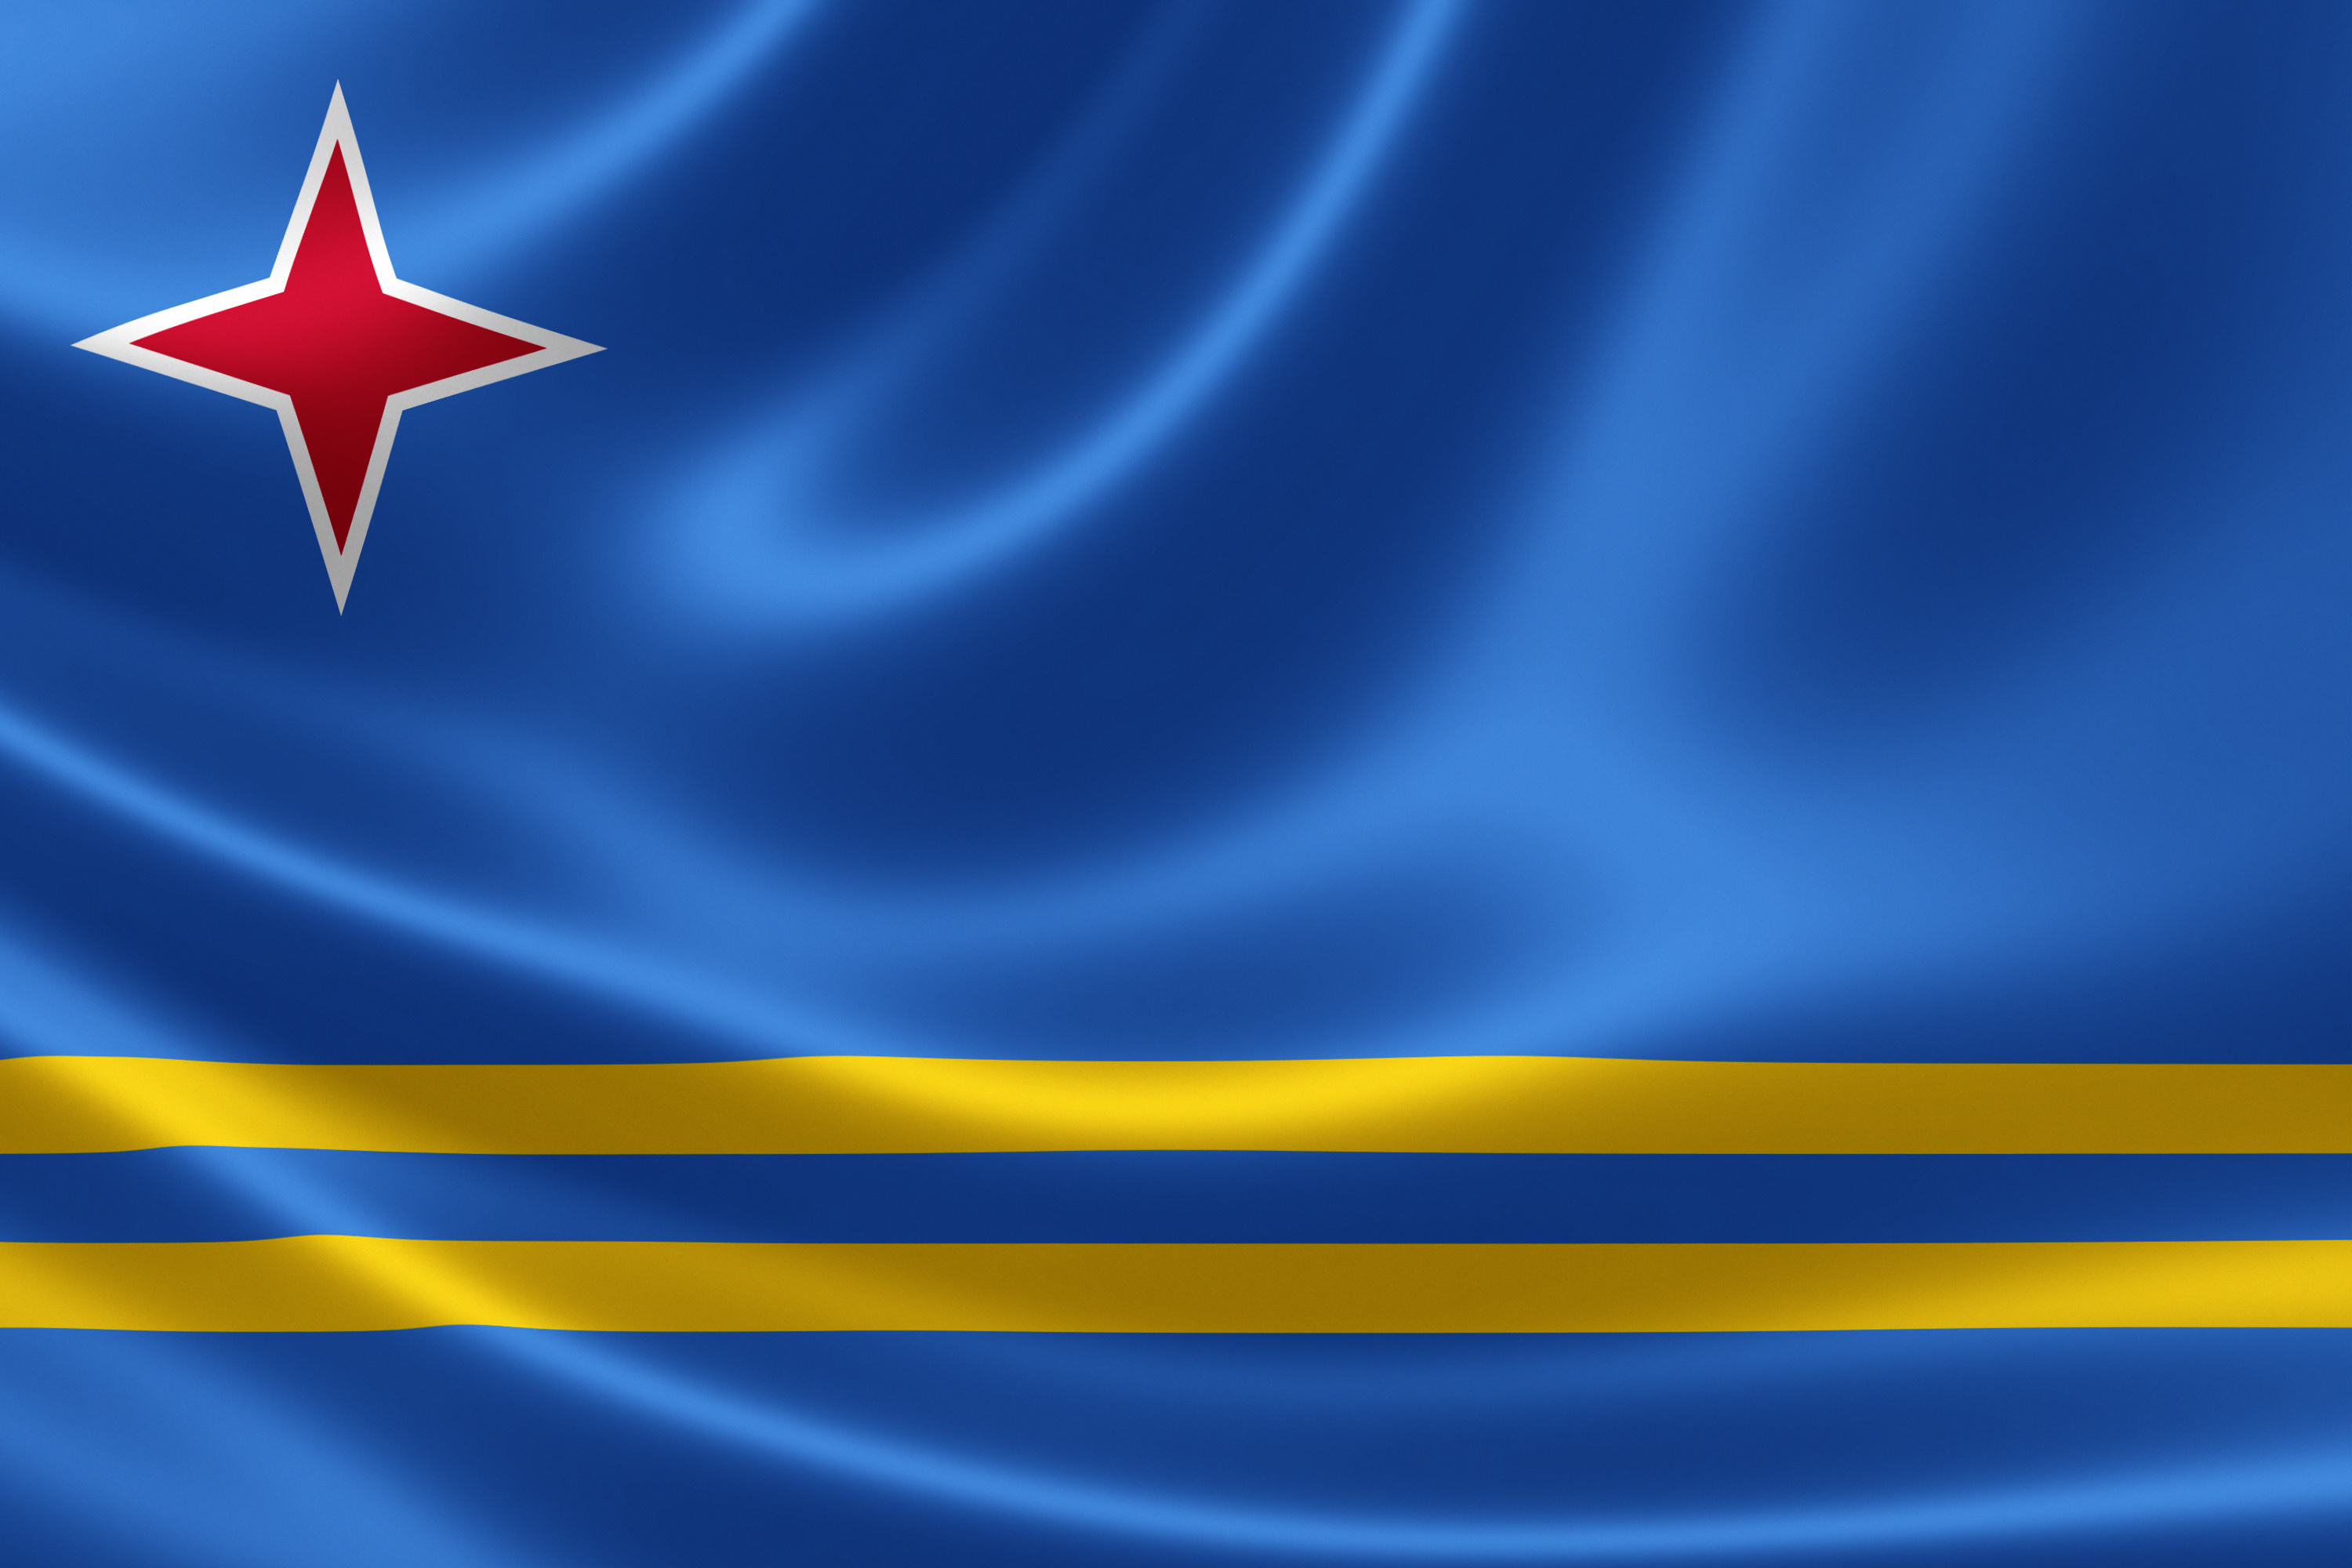 3D rendering of the flag of Aruba on satin texture. Aruba is a constituent country of the Kingdom of the Netherlands in the southern Caribbean Sea